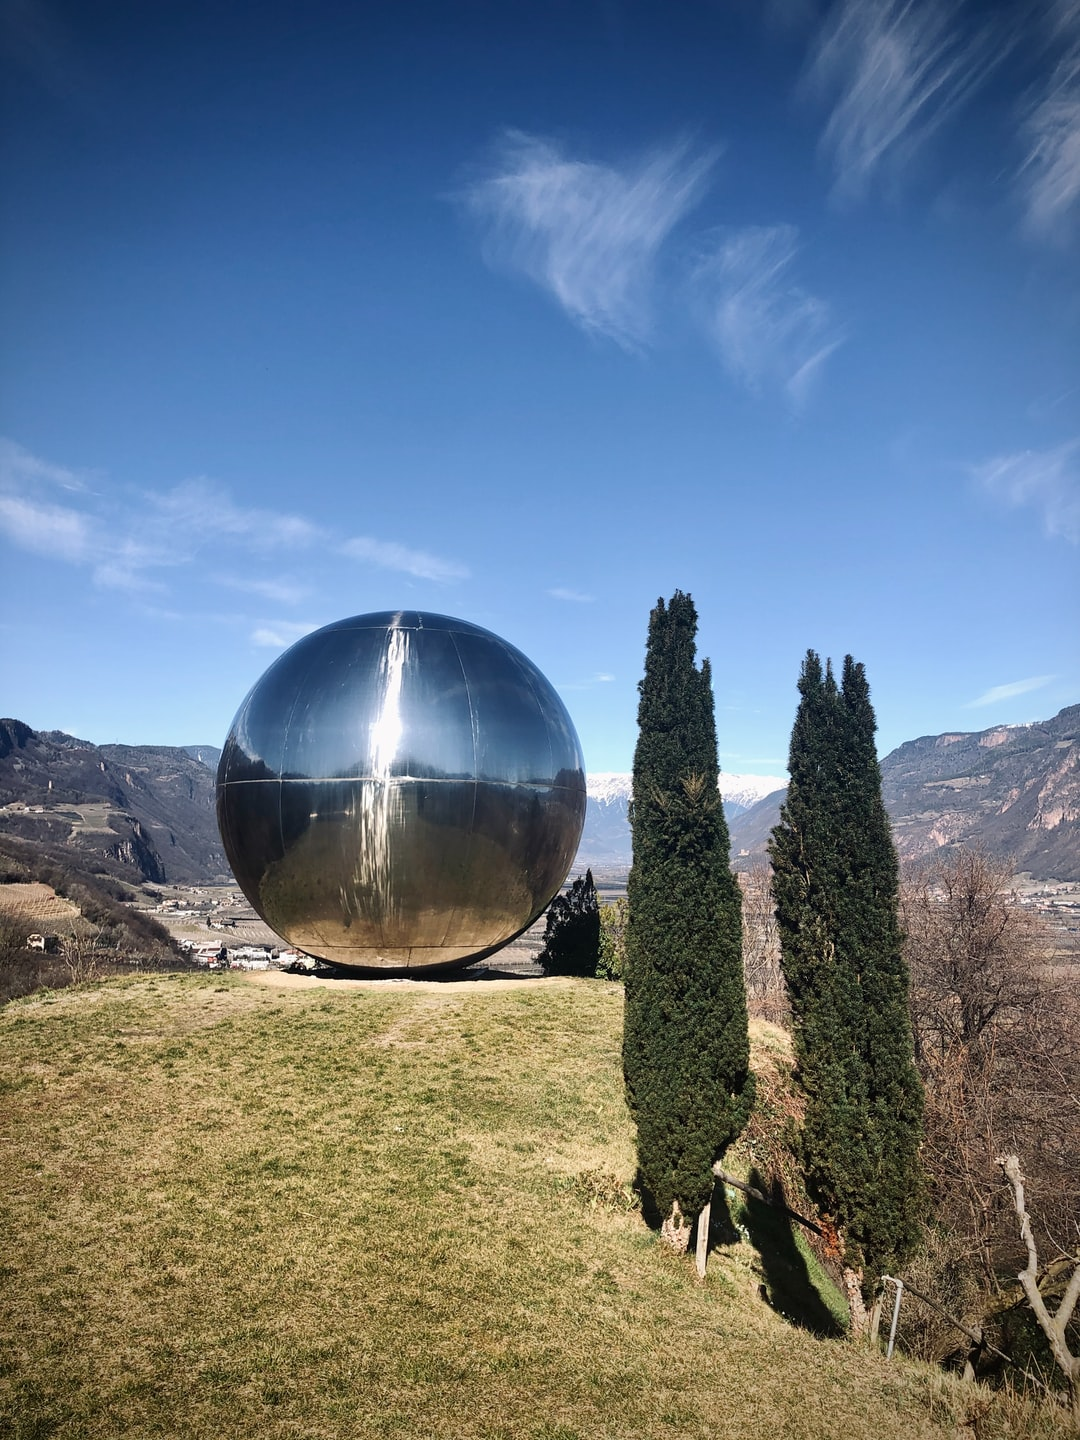 The Kugel (Sphere) made by Franz Messner in 1994 close to Bozen in South Tyrol (Italy) on a very brisk early March day. The object is 25 ft high and overlooks the Etsch Valley (Etschtal) up to the city of Meran. For RNL.  March 08, 2020, 1105 AM.